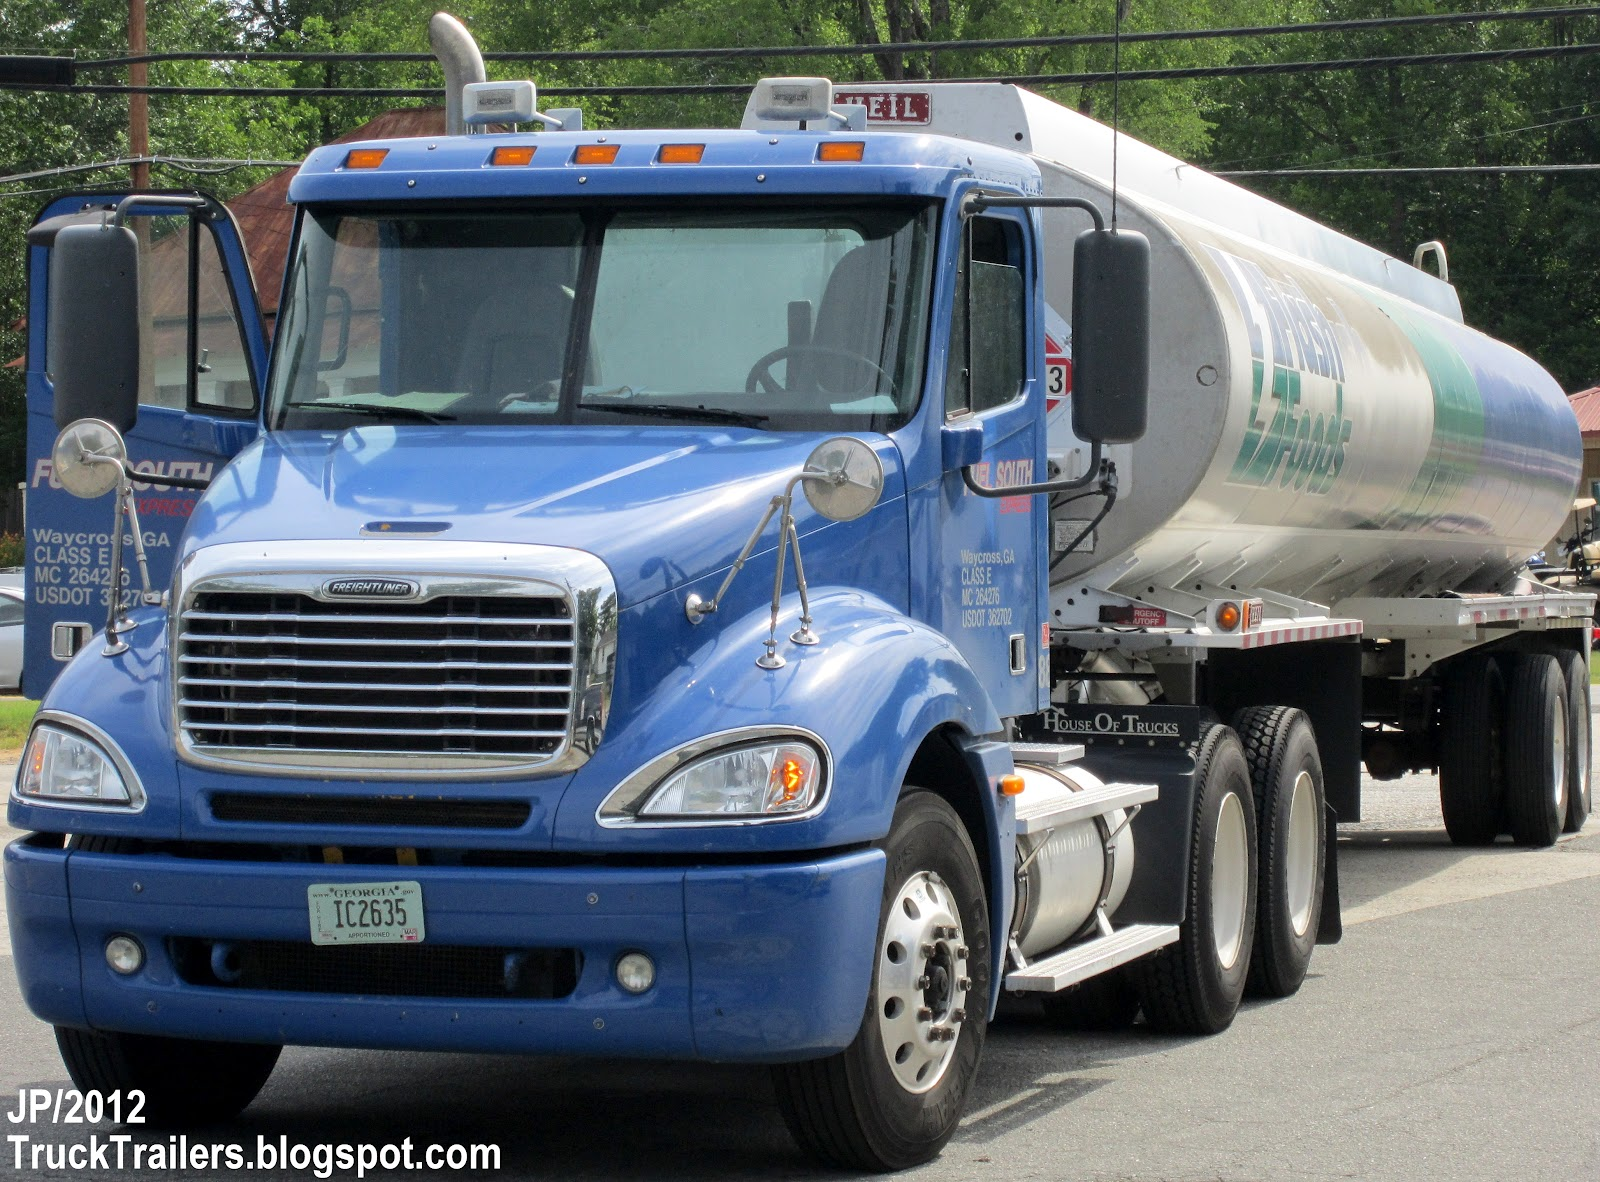 Truck, HEIL Gasoline Fuel Tanker Trailer, Flash Foods Gas Station